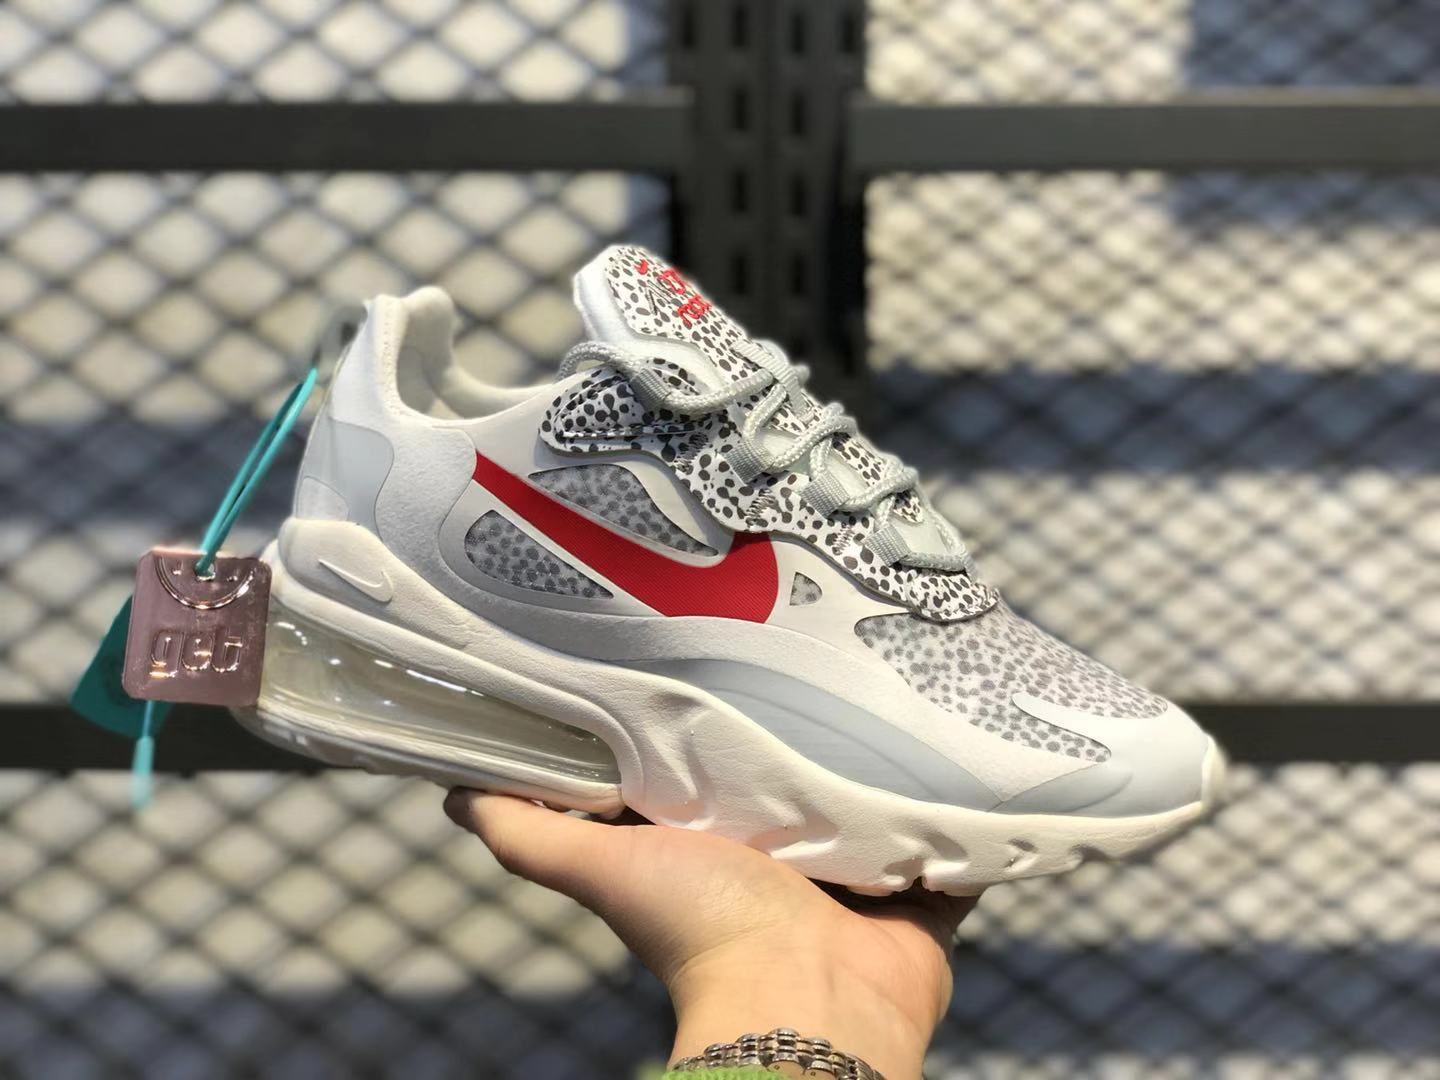 Nike WMNS Air Max 270 React Neutral Grey/University Red Running Shoes CT2535-001